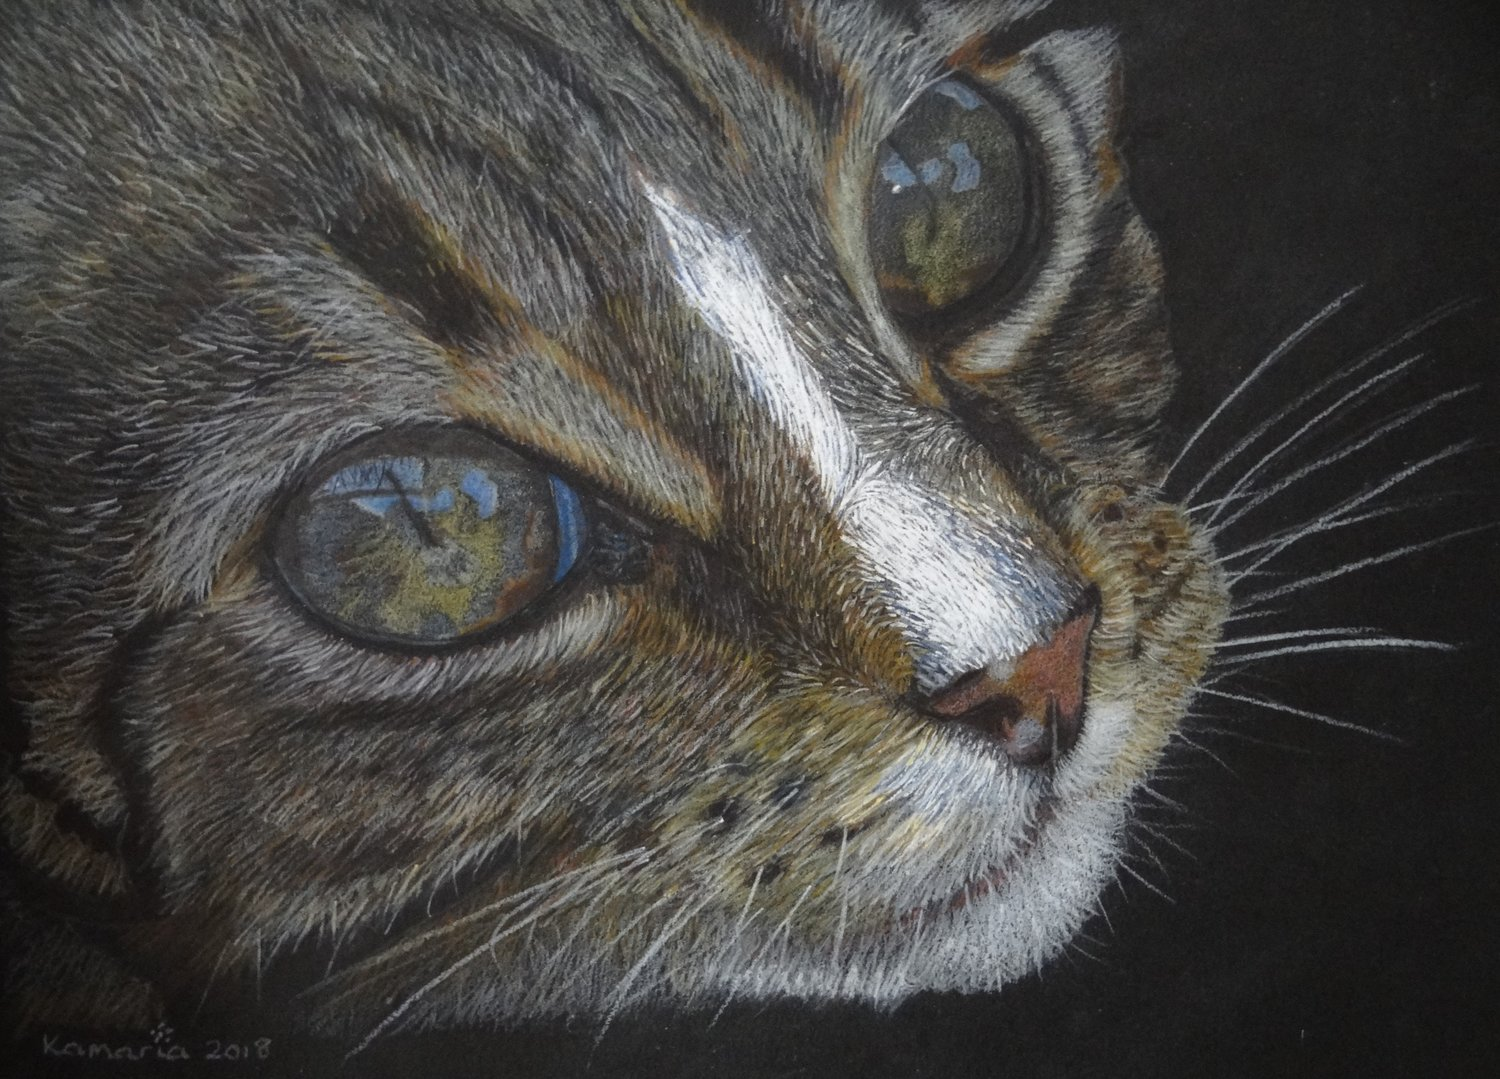 'Cats Eyes', Karen Hunt, Pencil on paper, 23 x 30 cm